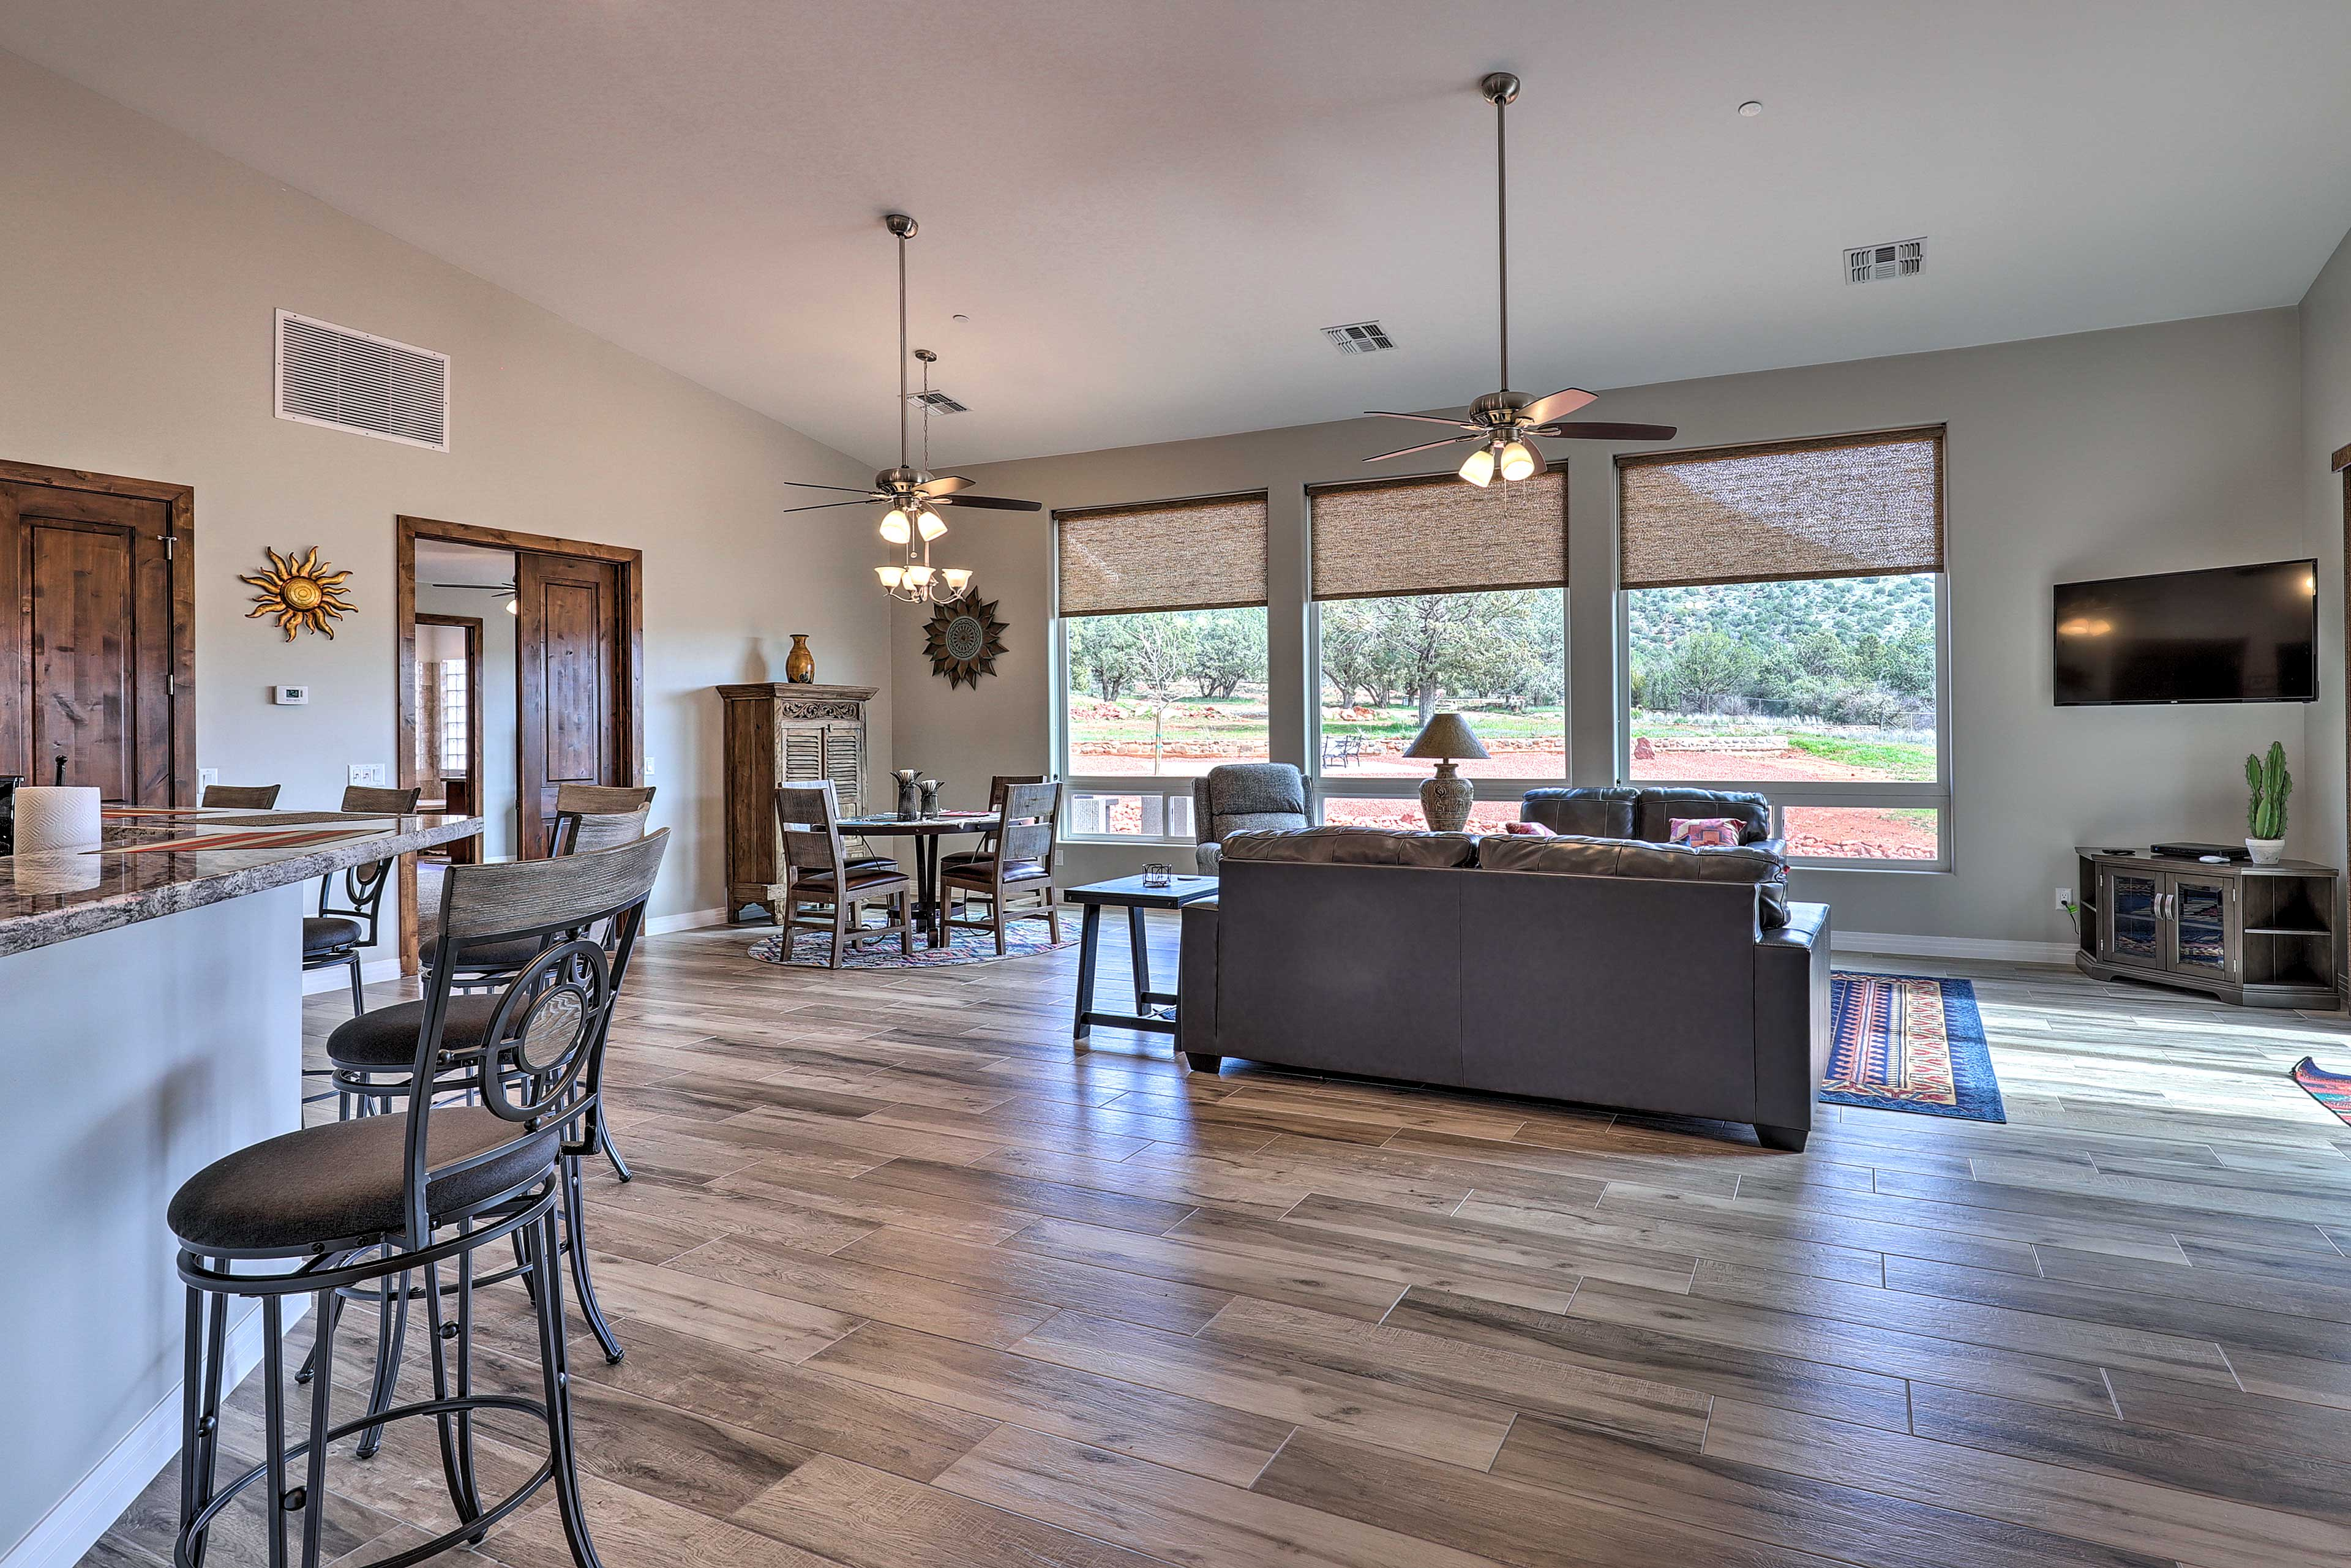 This home boasts 2,200 square feet of living space.